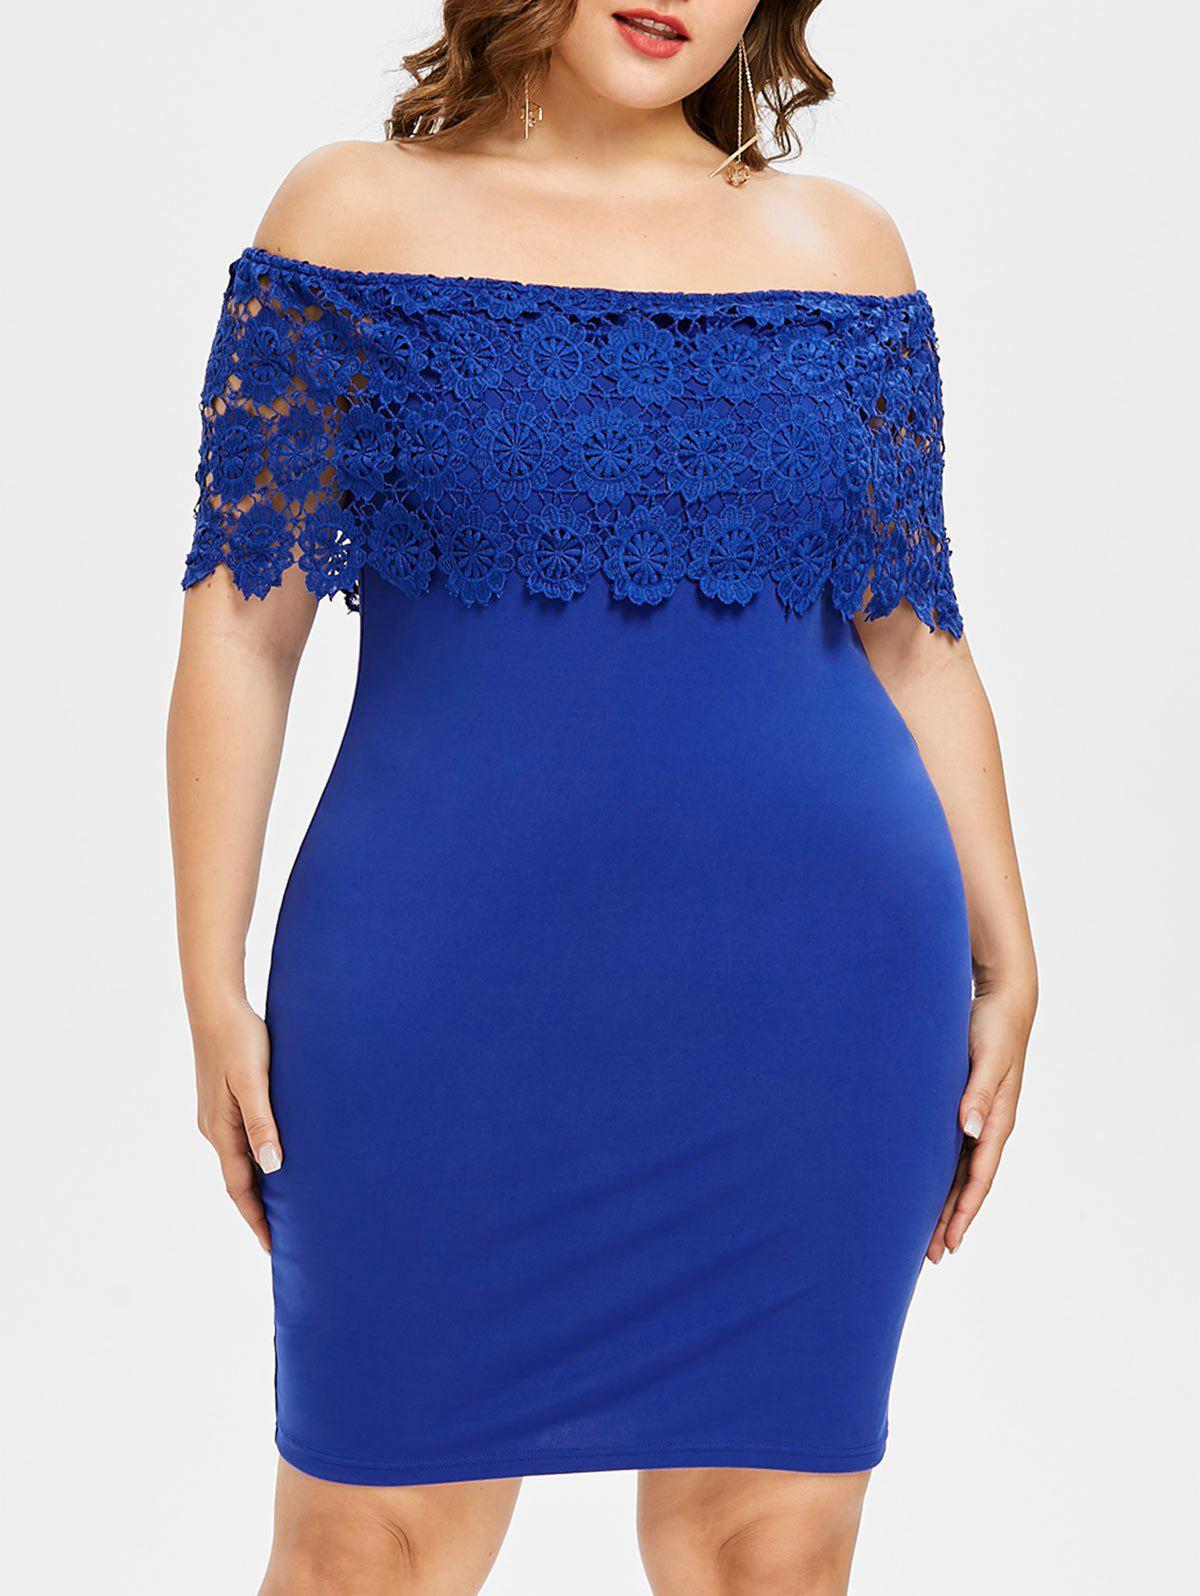 Plus Size Knee Length Off Shoulder Dress - COBALT BLUE L